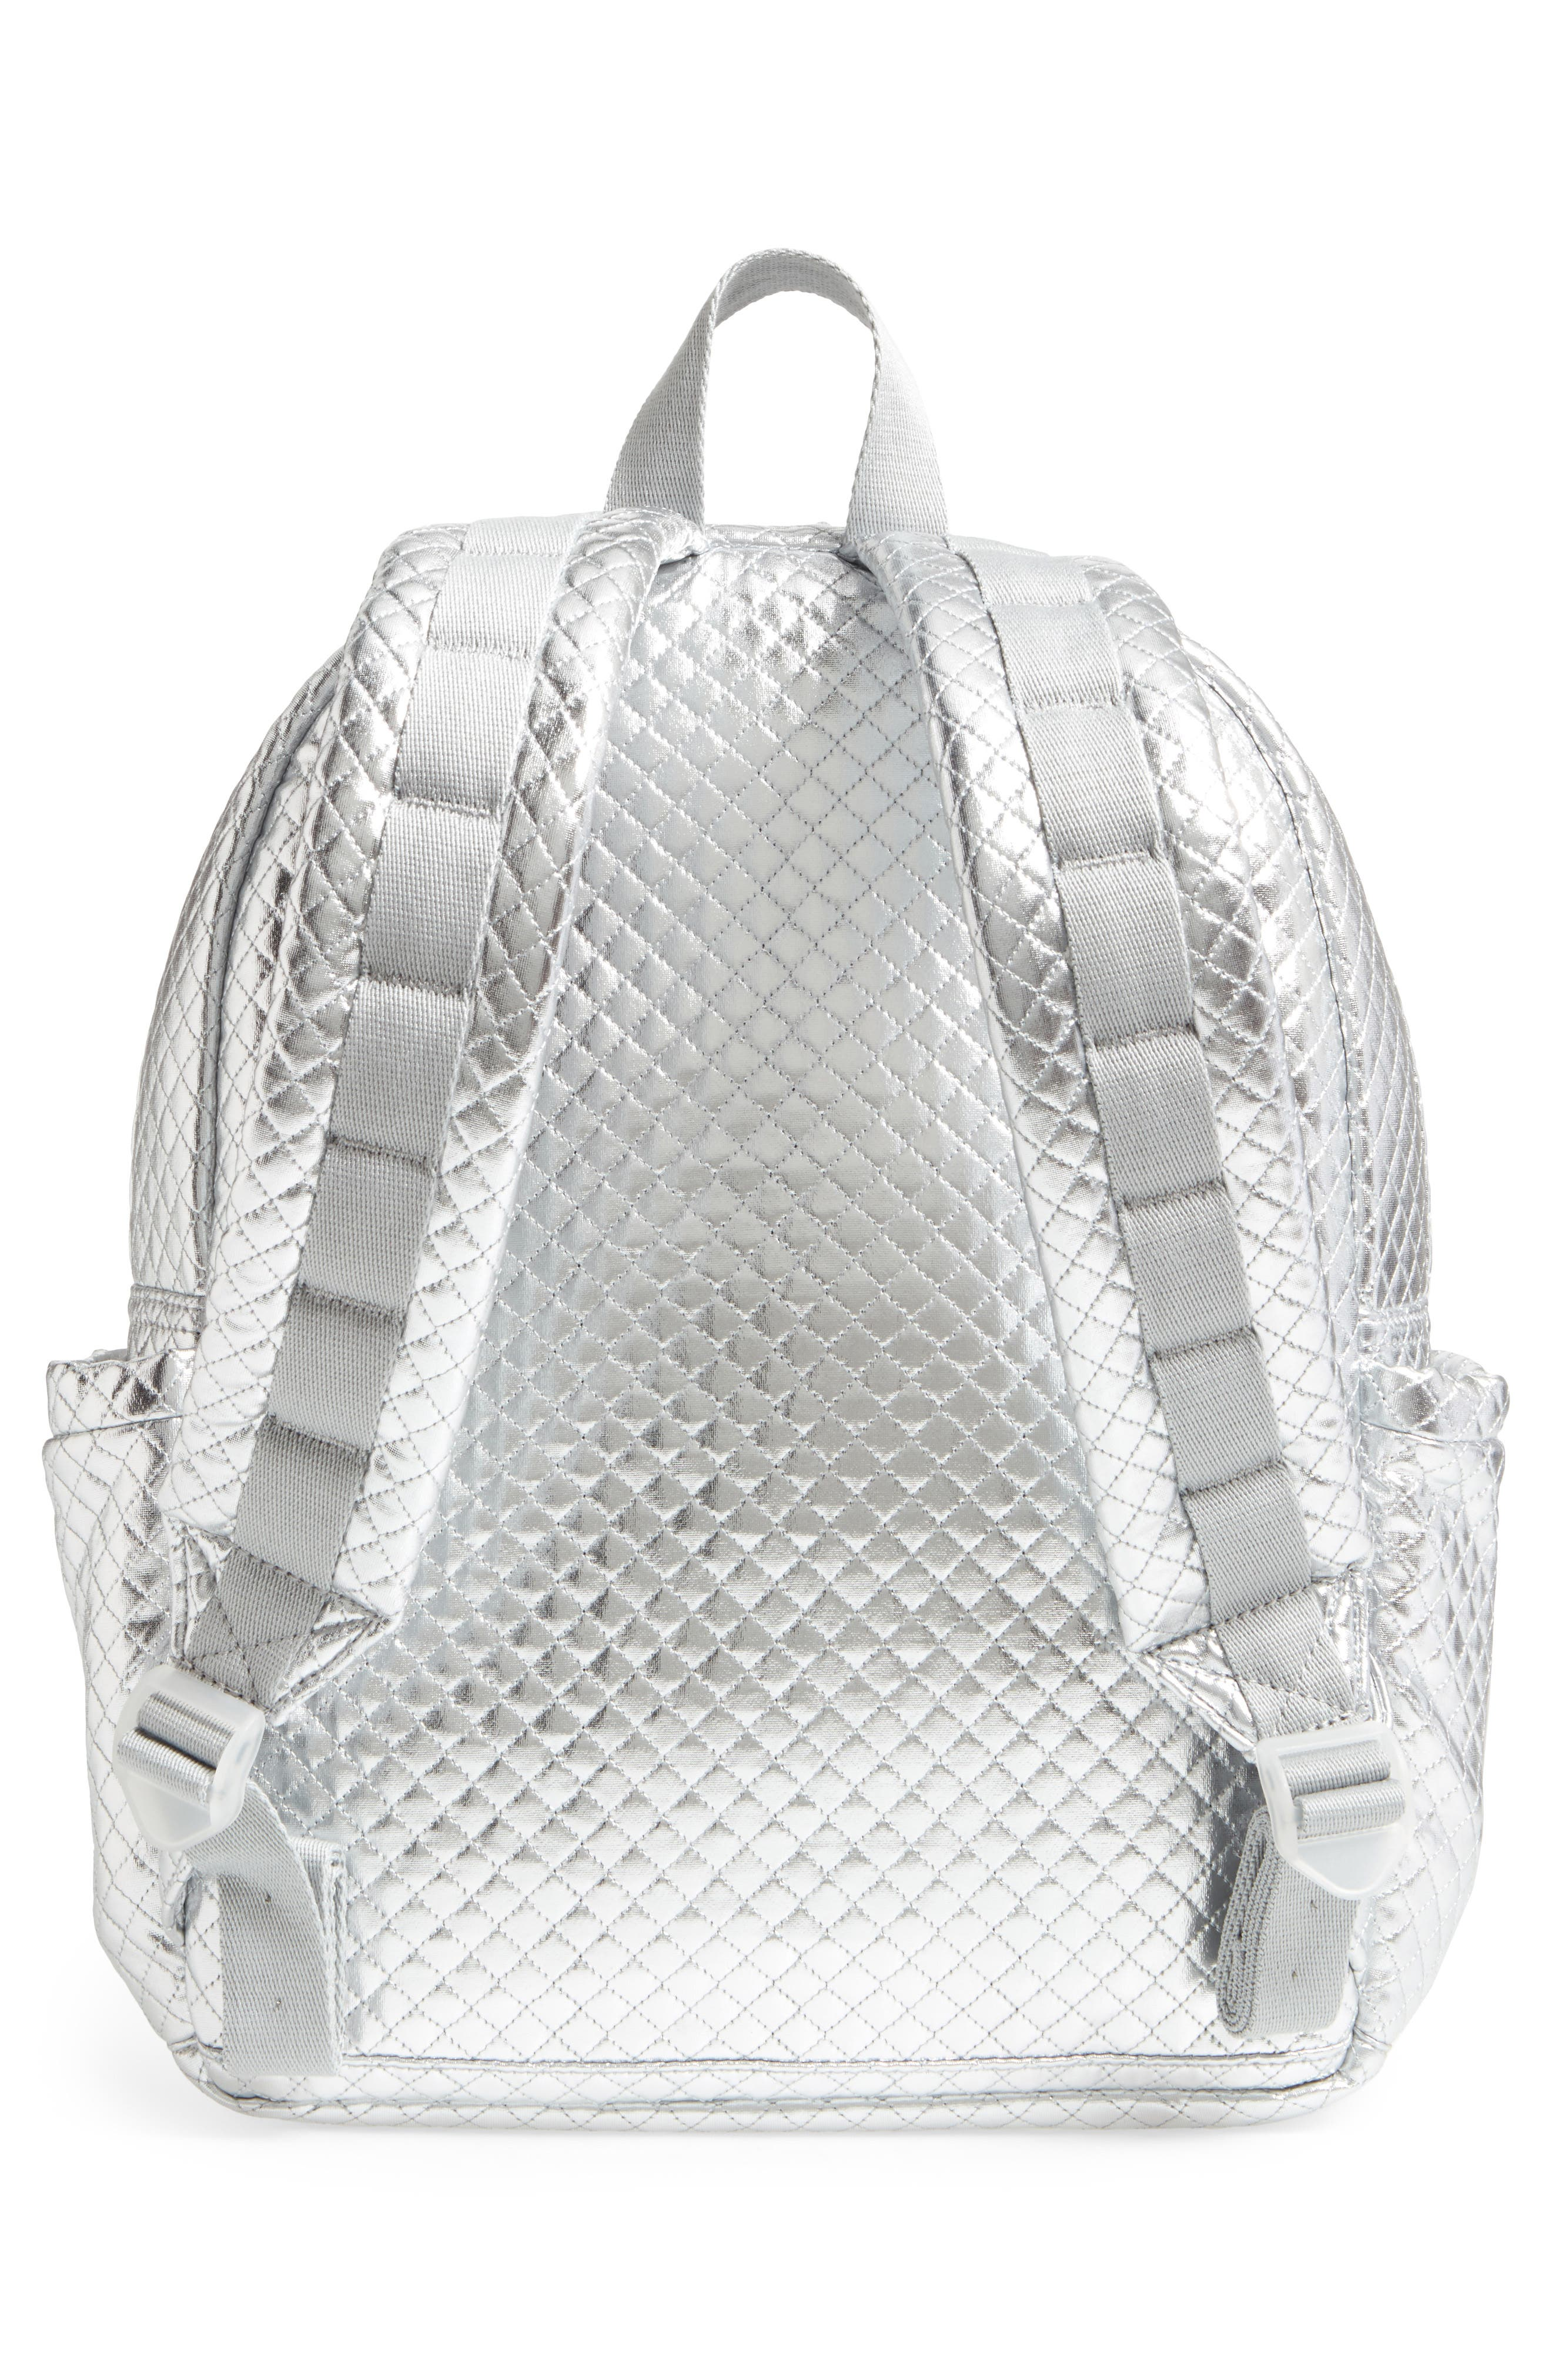 Quilted Metallic Kane Backpack,                             Alternate thumbnail 3, color,                             041